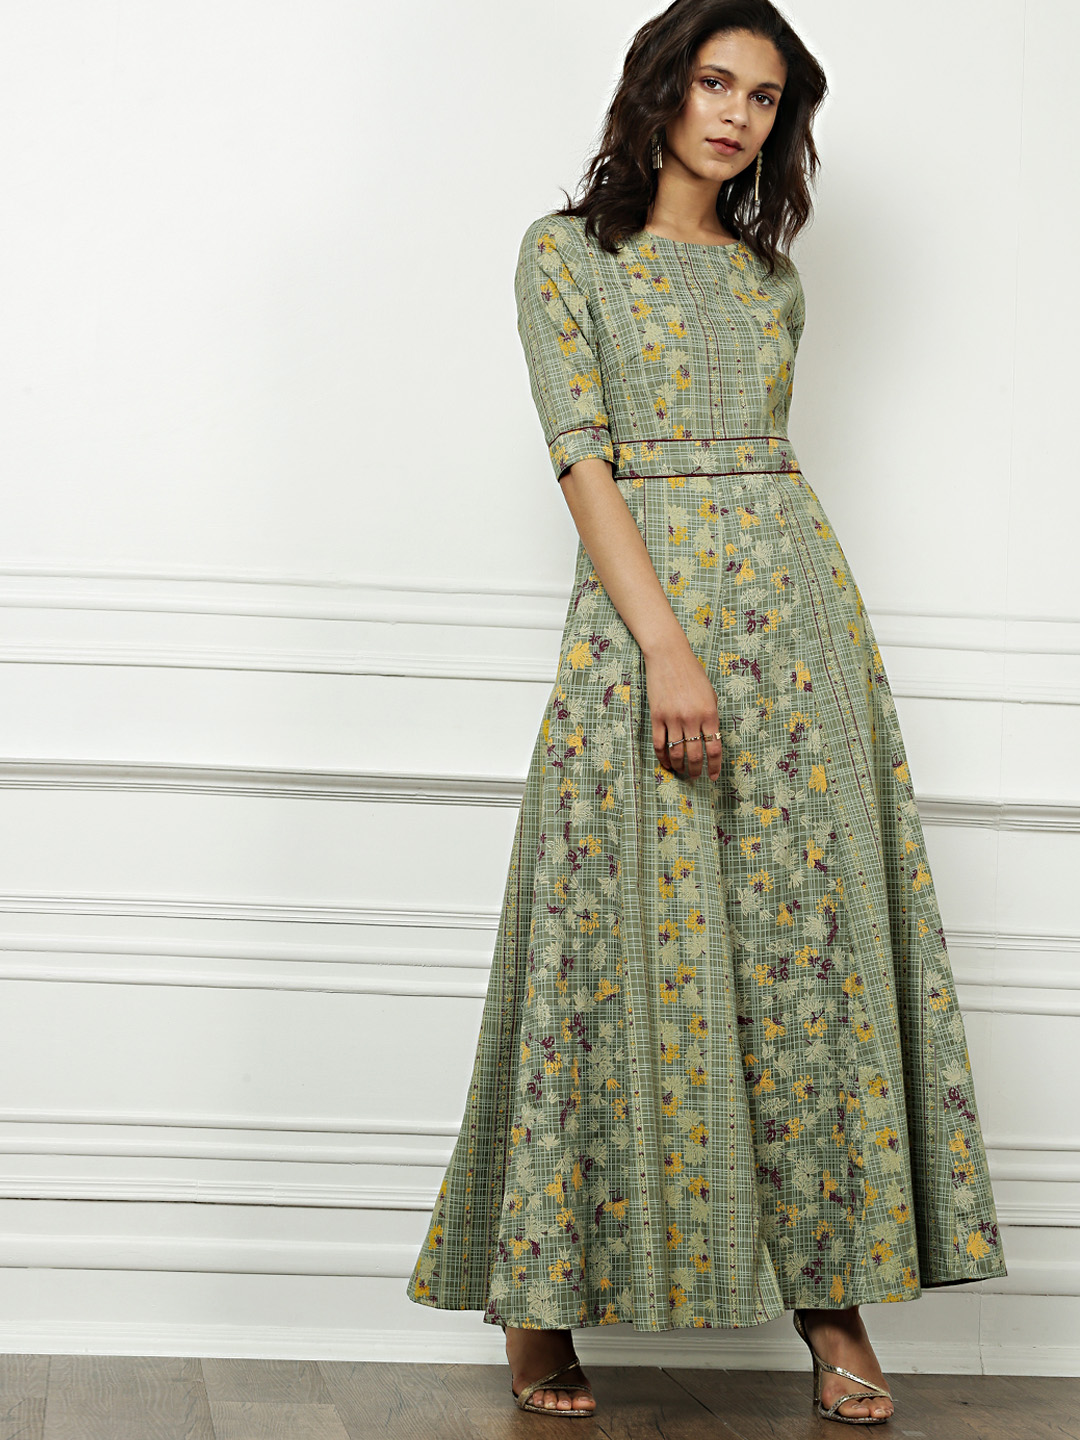 Myntra -All About You from Deepika Padukone Women Green Printed A-line Dress- Rs. 2499